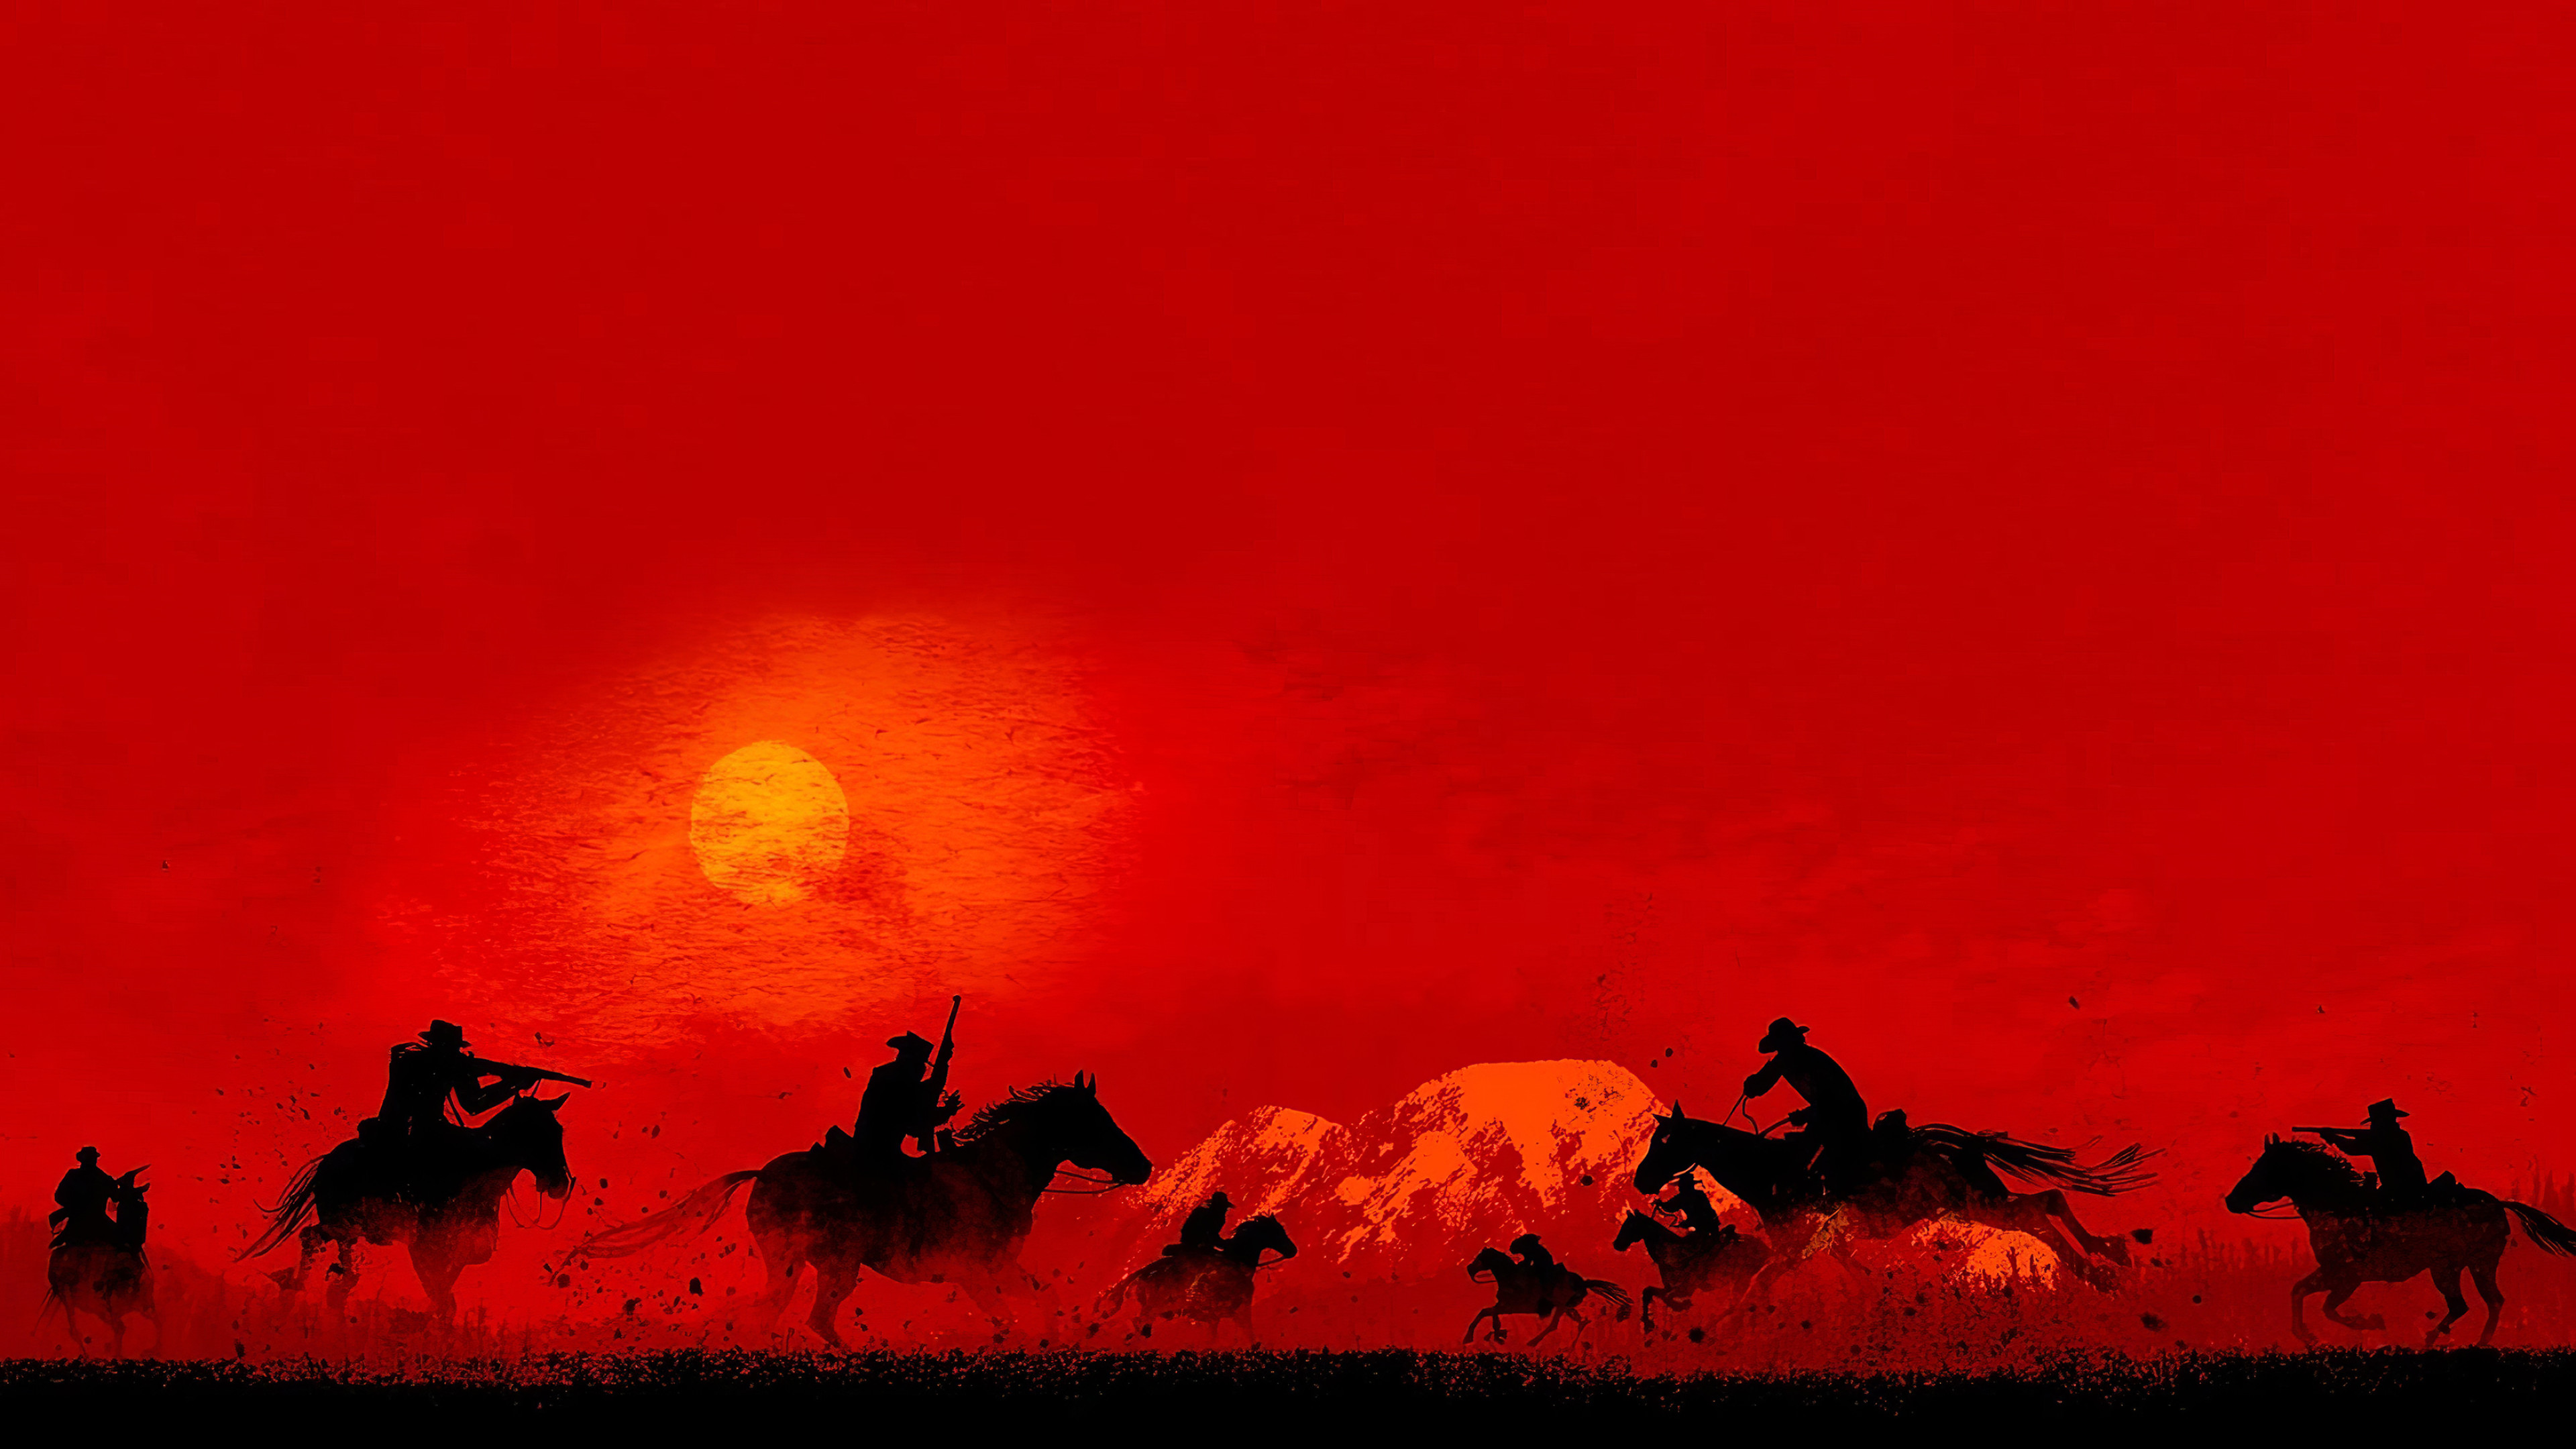 red dead online beta zg 3840x2160 1 - Red Dead Online Beta - Red Dead Online Beta 4k wallpaper